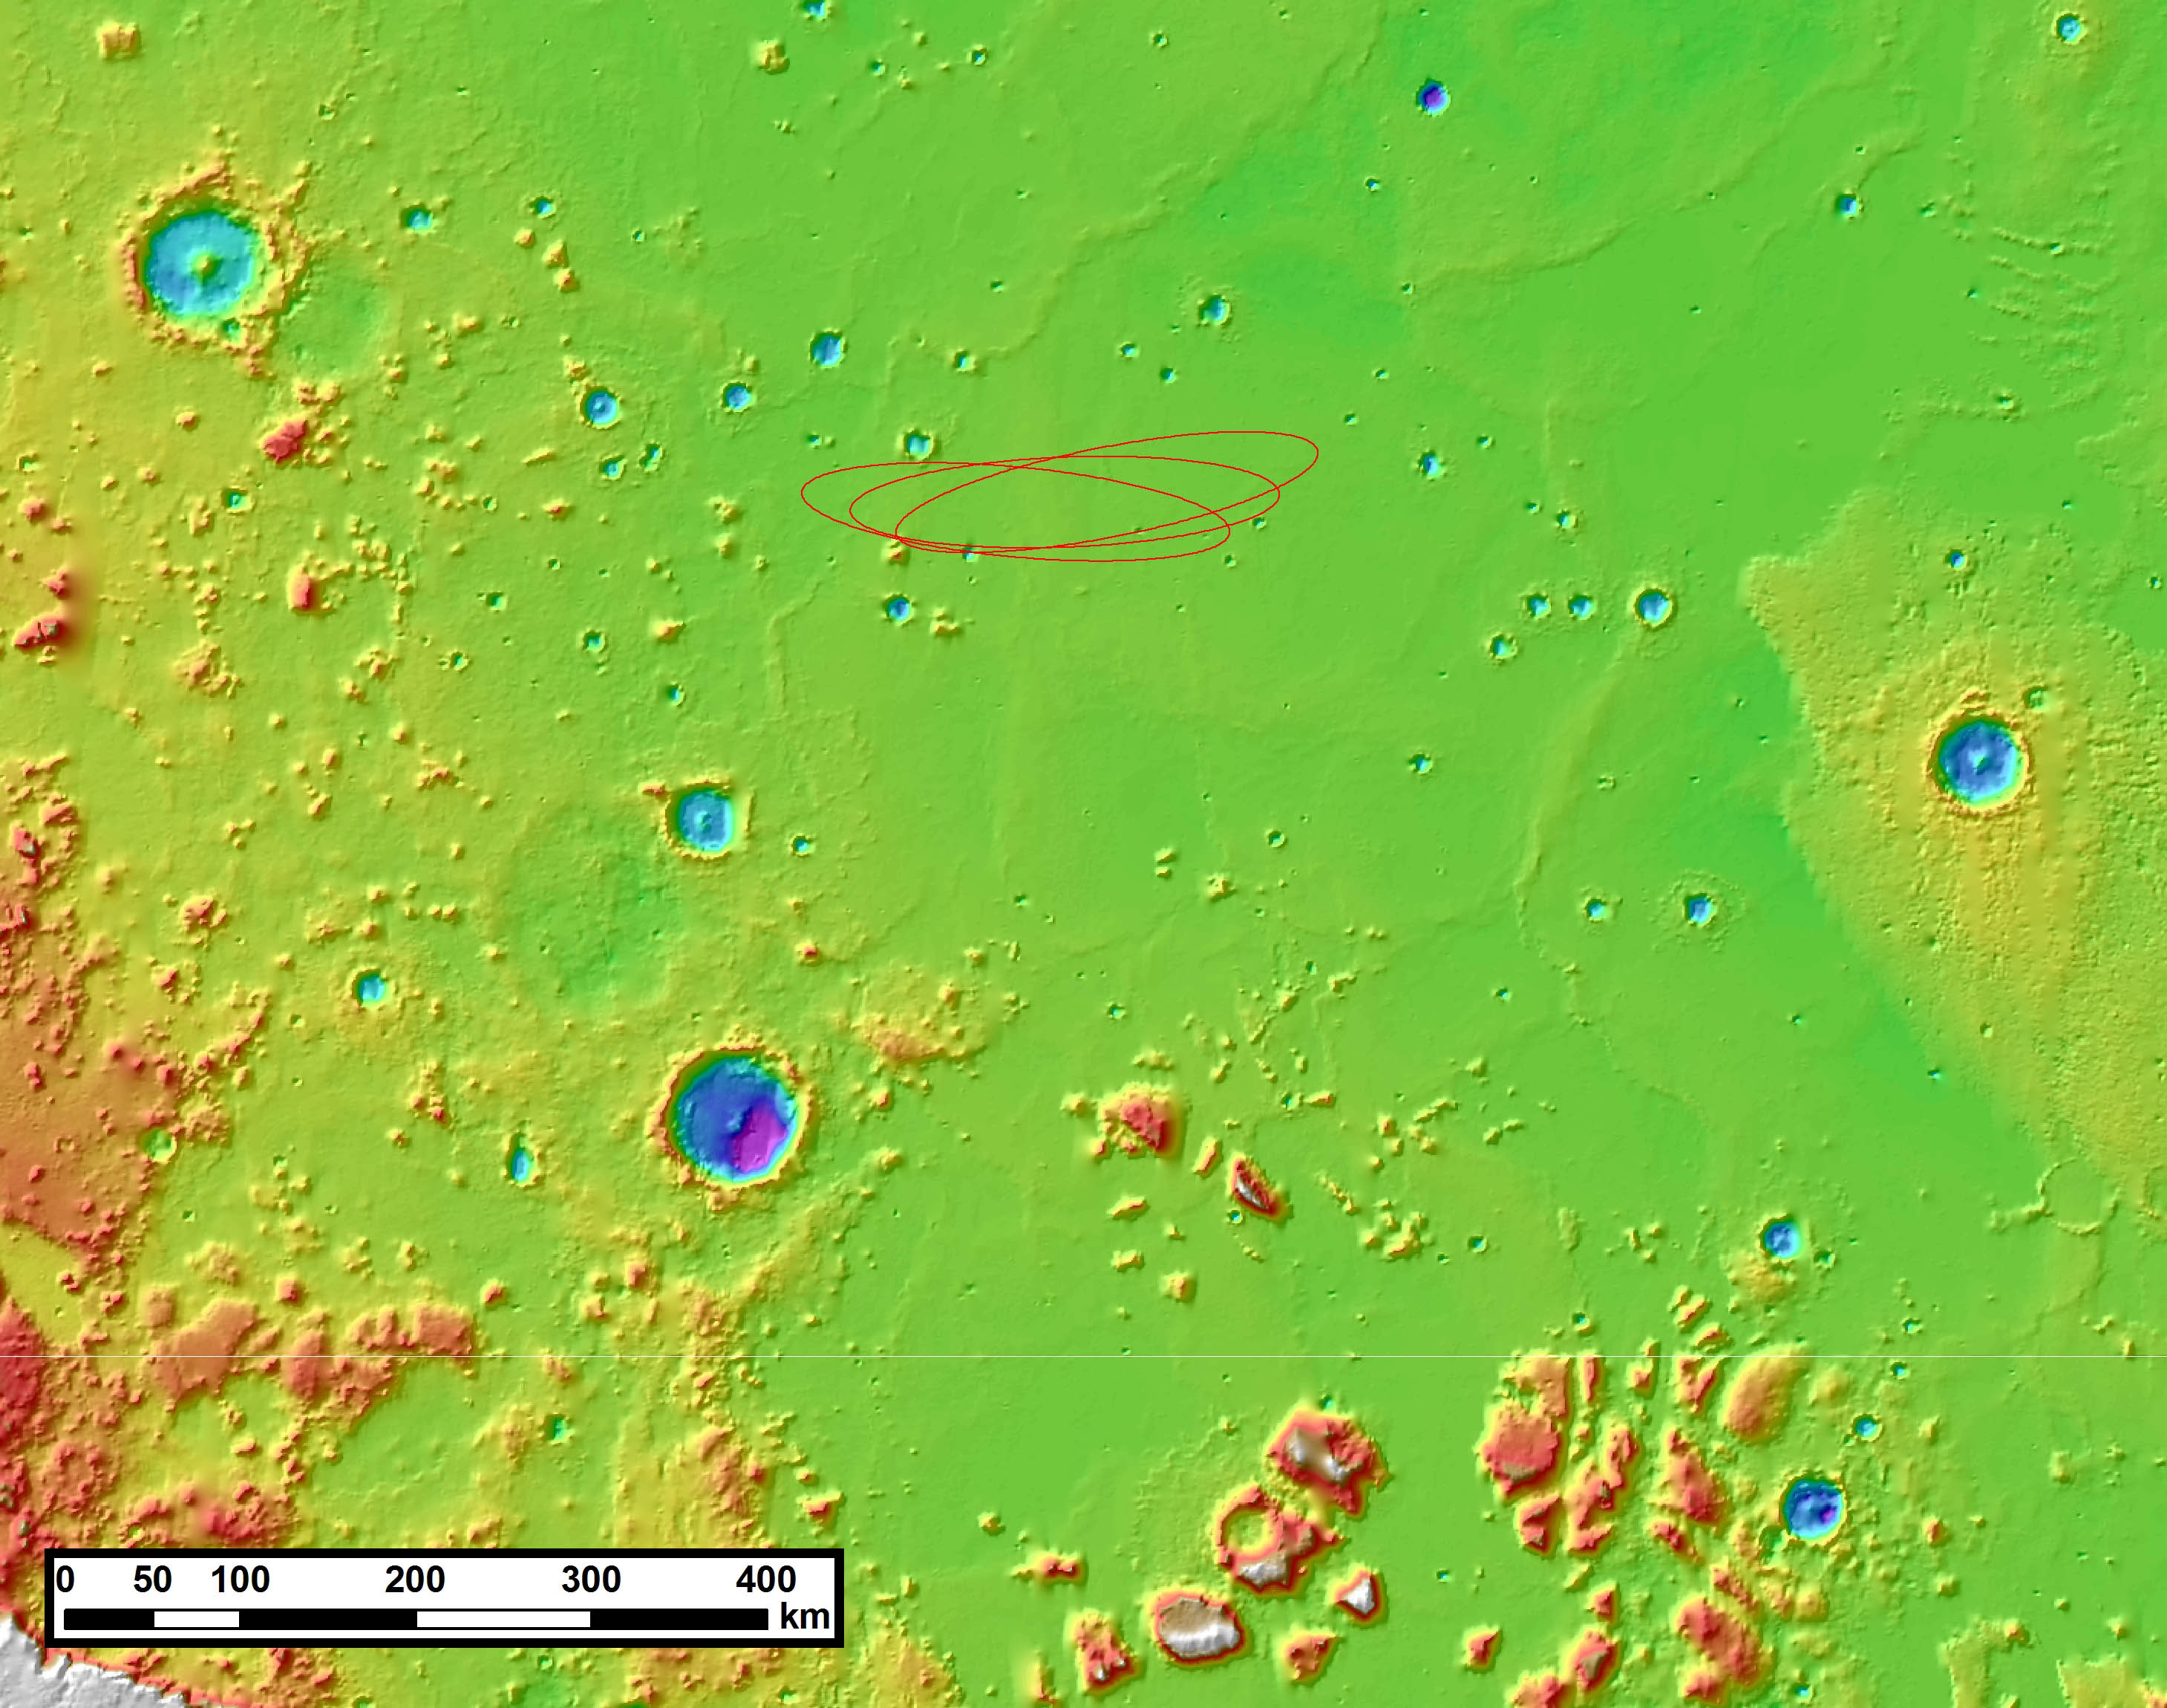 mars insight landing map - photo #5